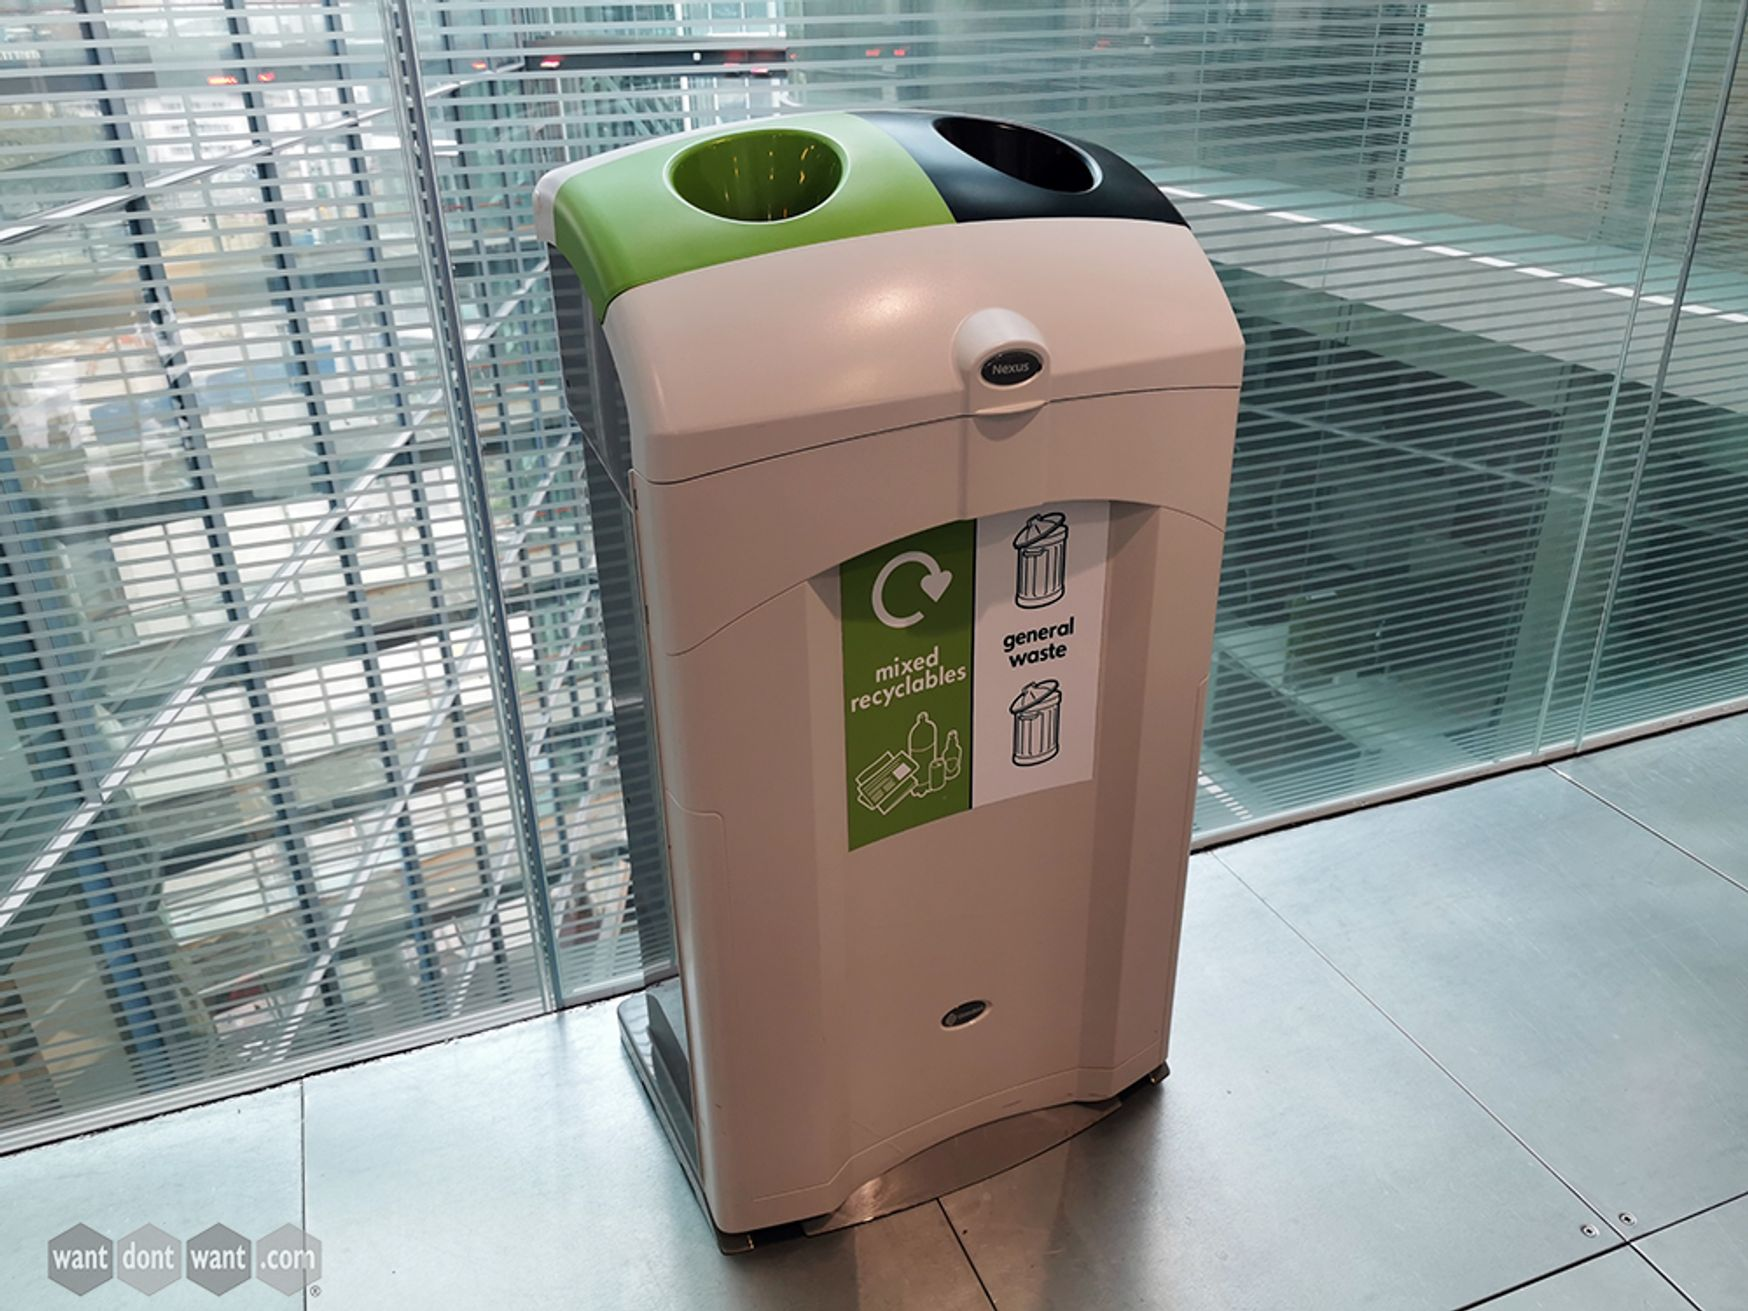 Used Nexus 100 Mixed Recyclables/General Waste Bin